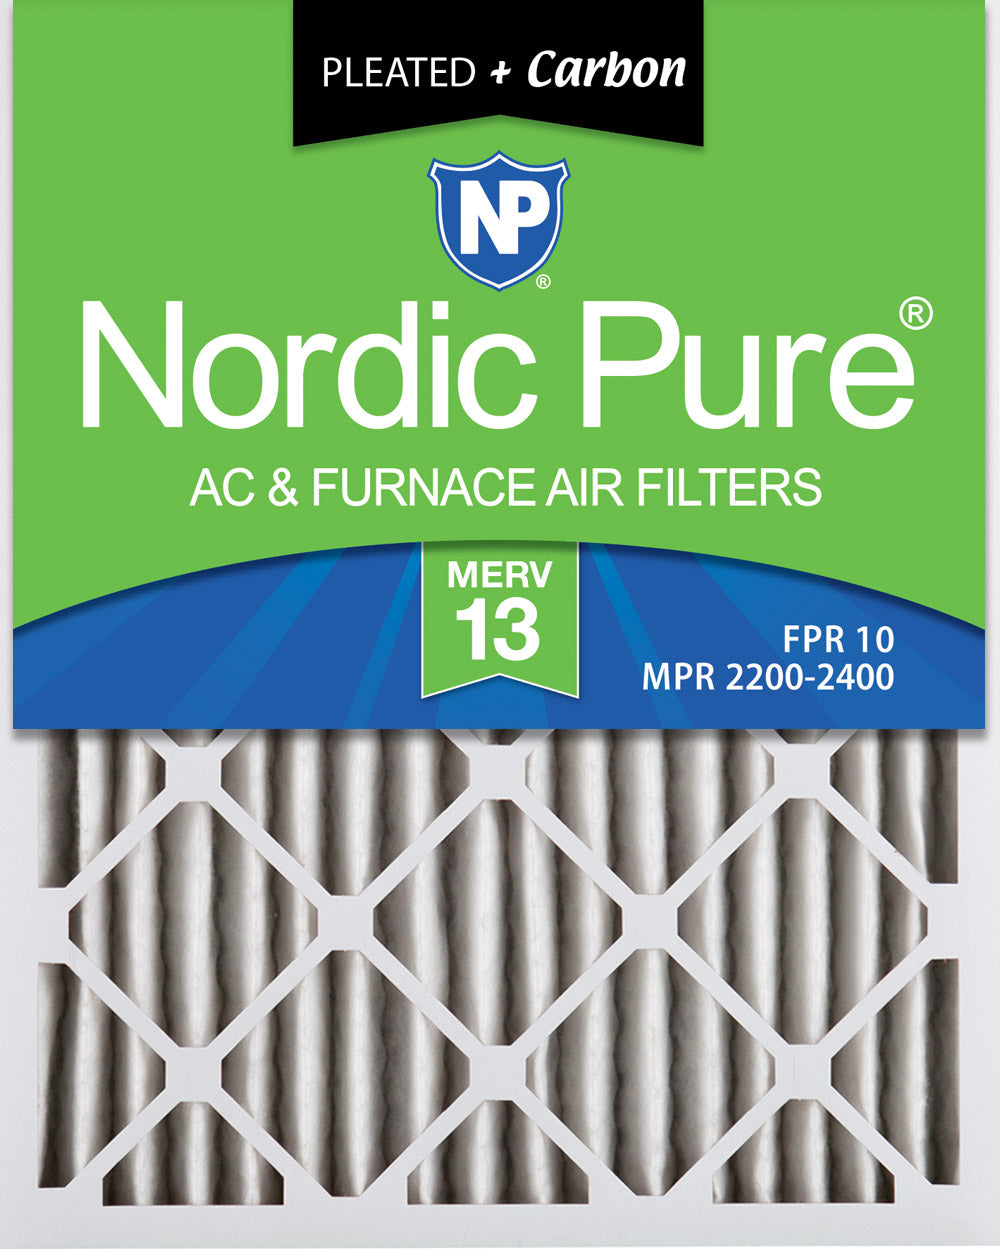 14x20x2 Pleated Air Filters MERV 13 Plus Carbon 3 Pack